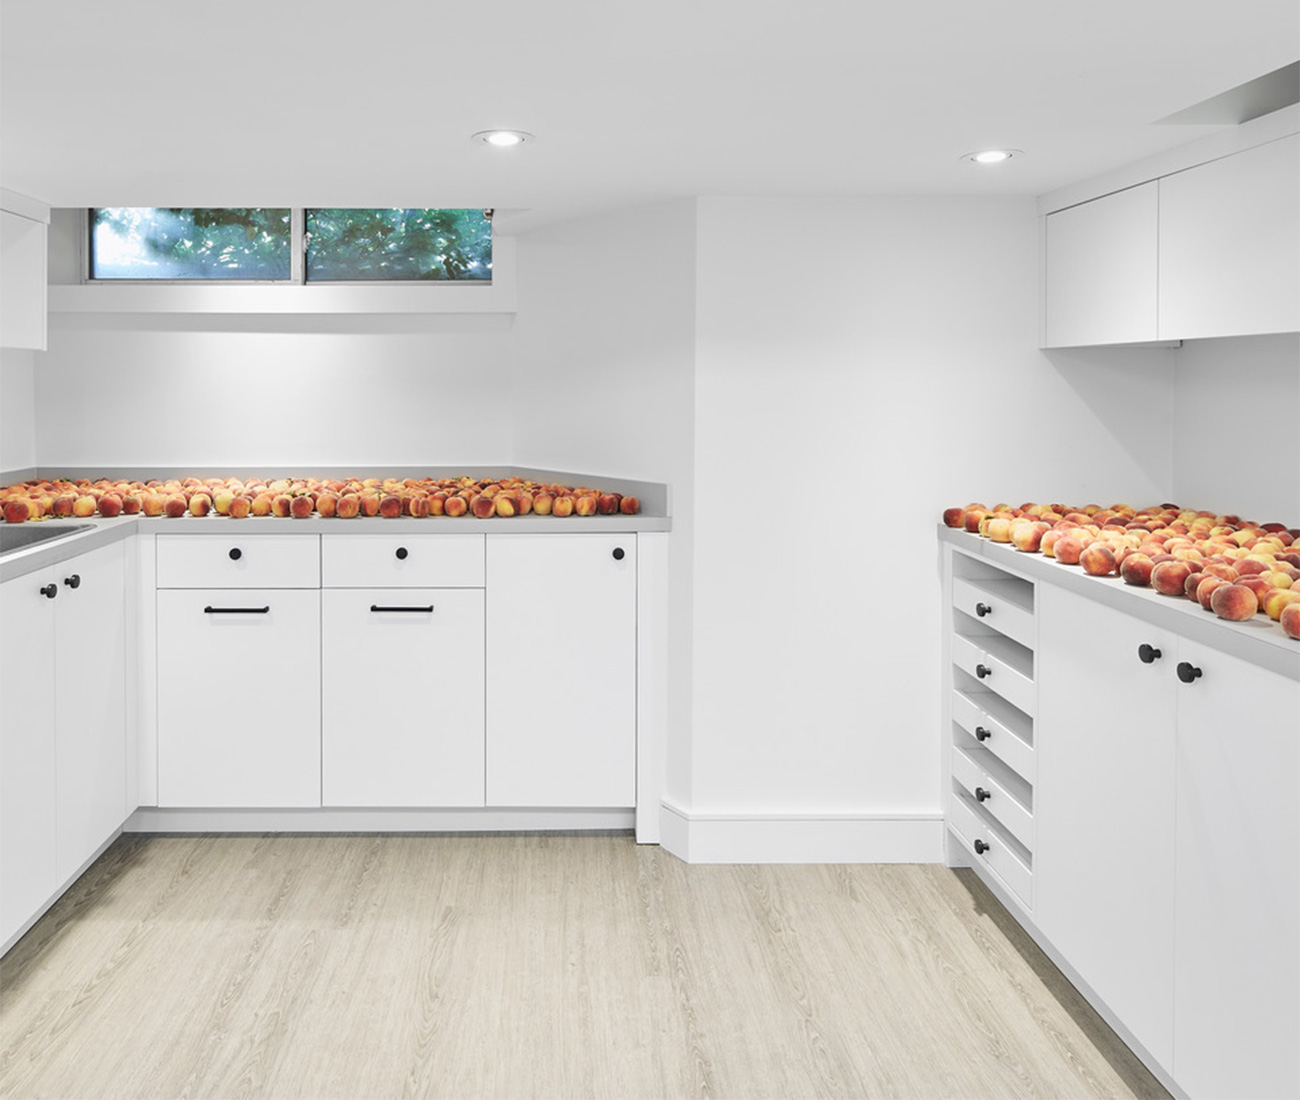 Also in the new basement is a workroom perfectly suited to preserving and canning fresh fruit.